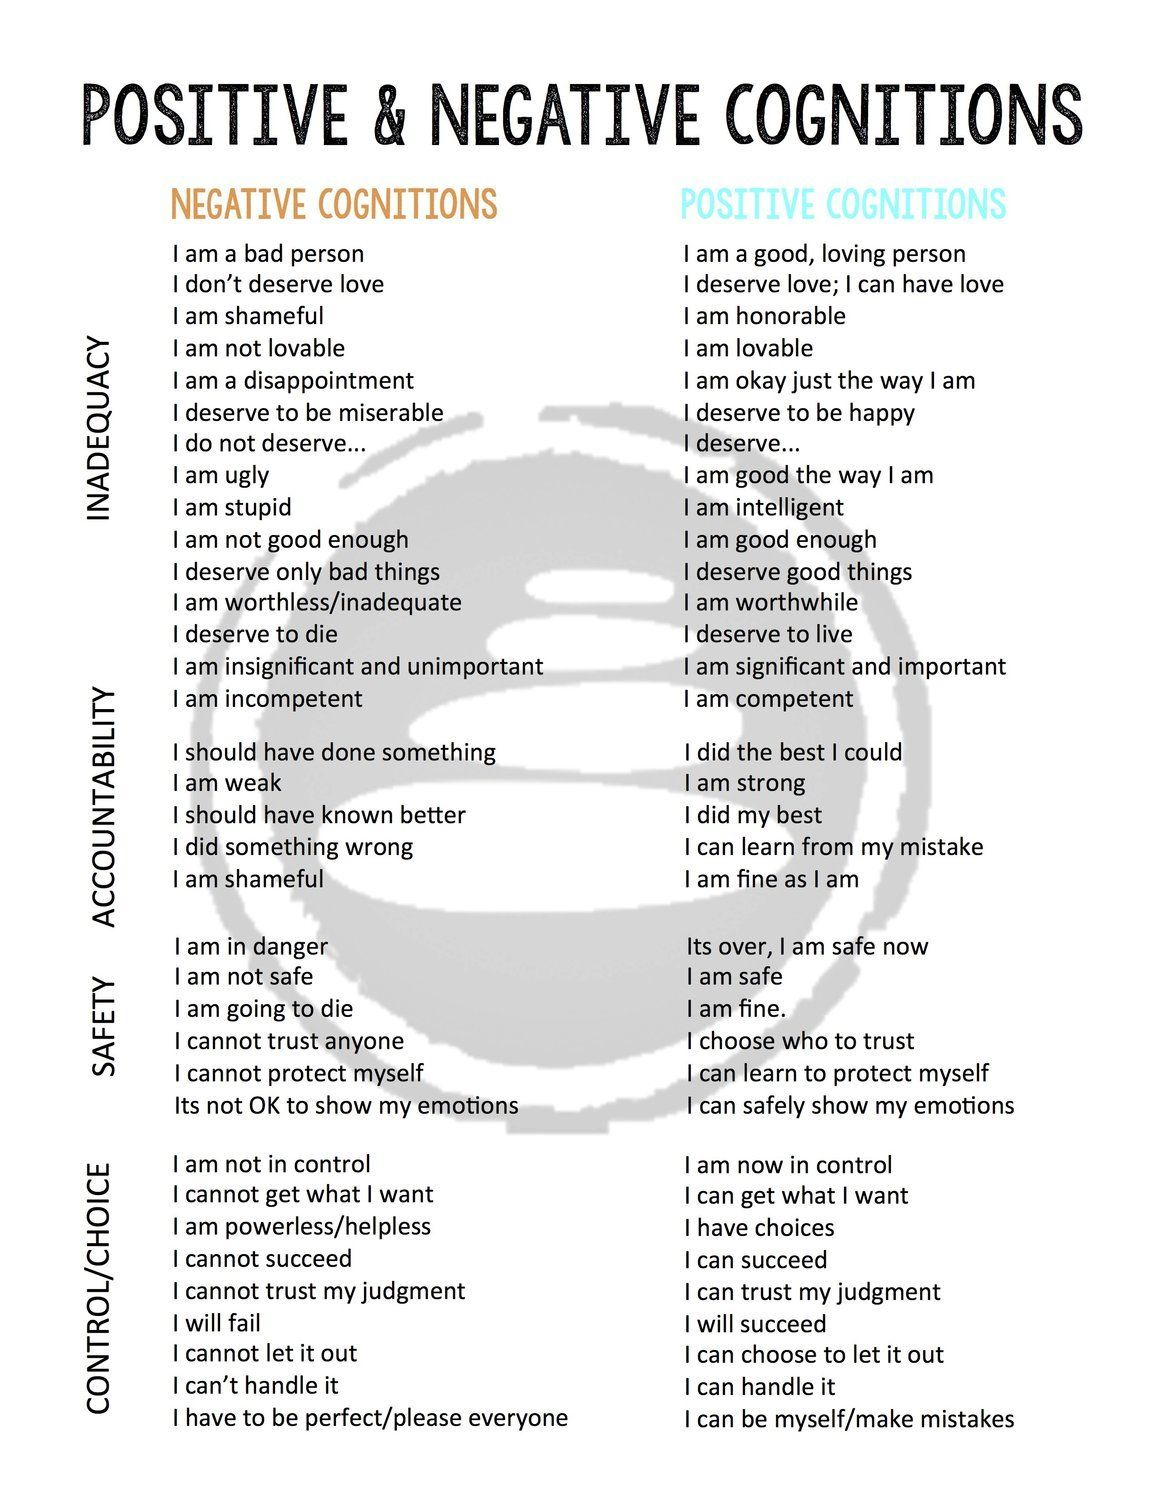 Positive and Negative Cognitions Chart